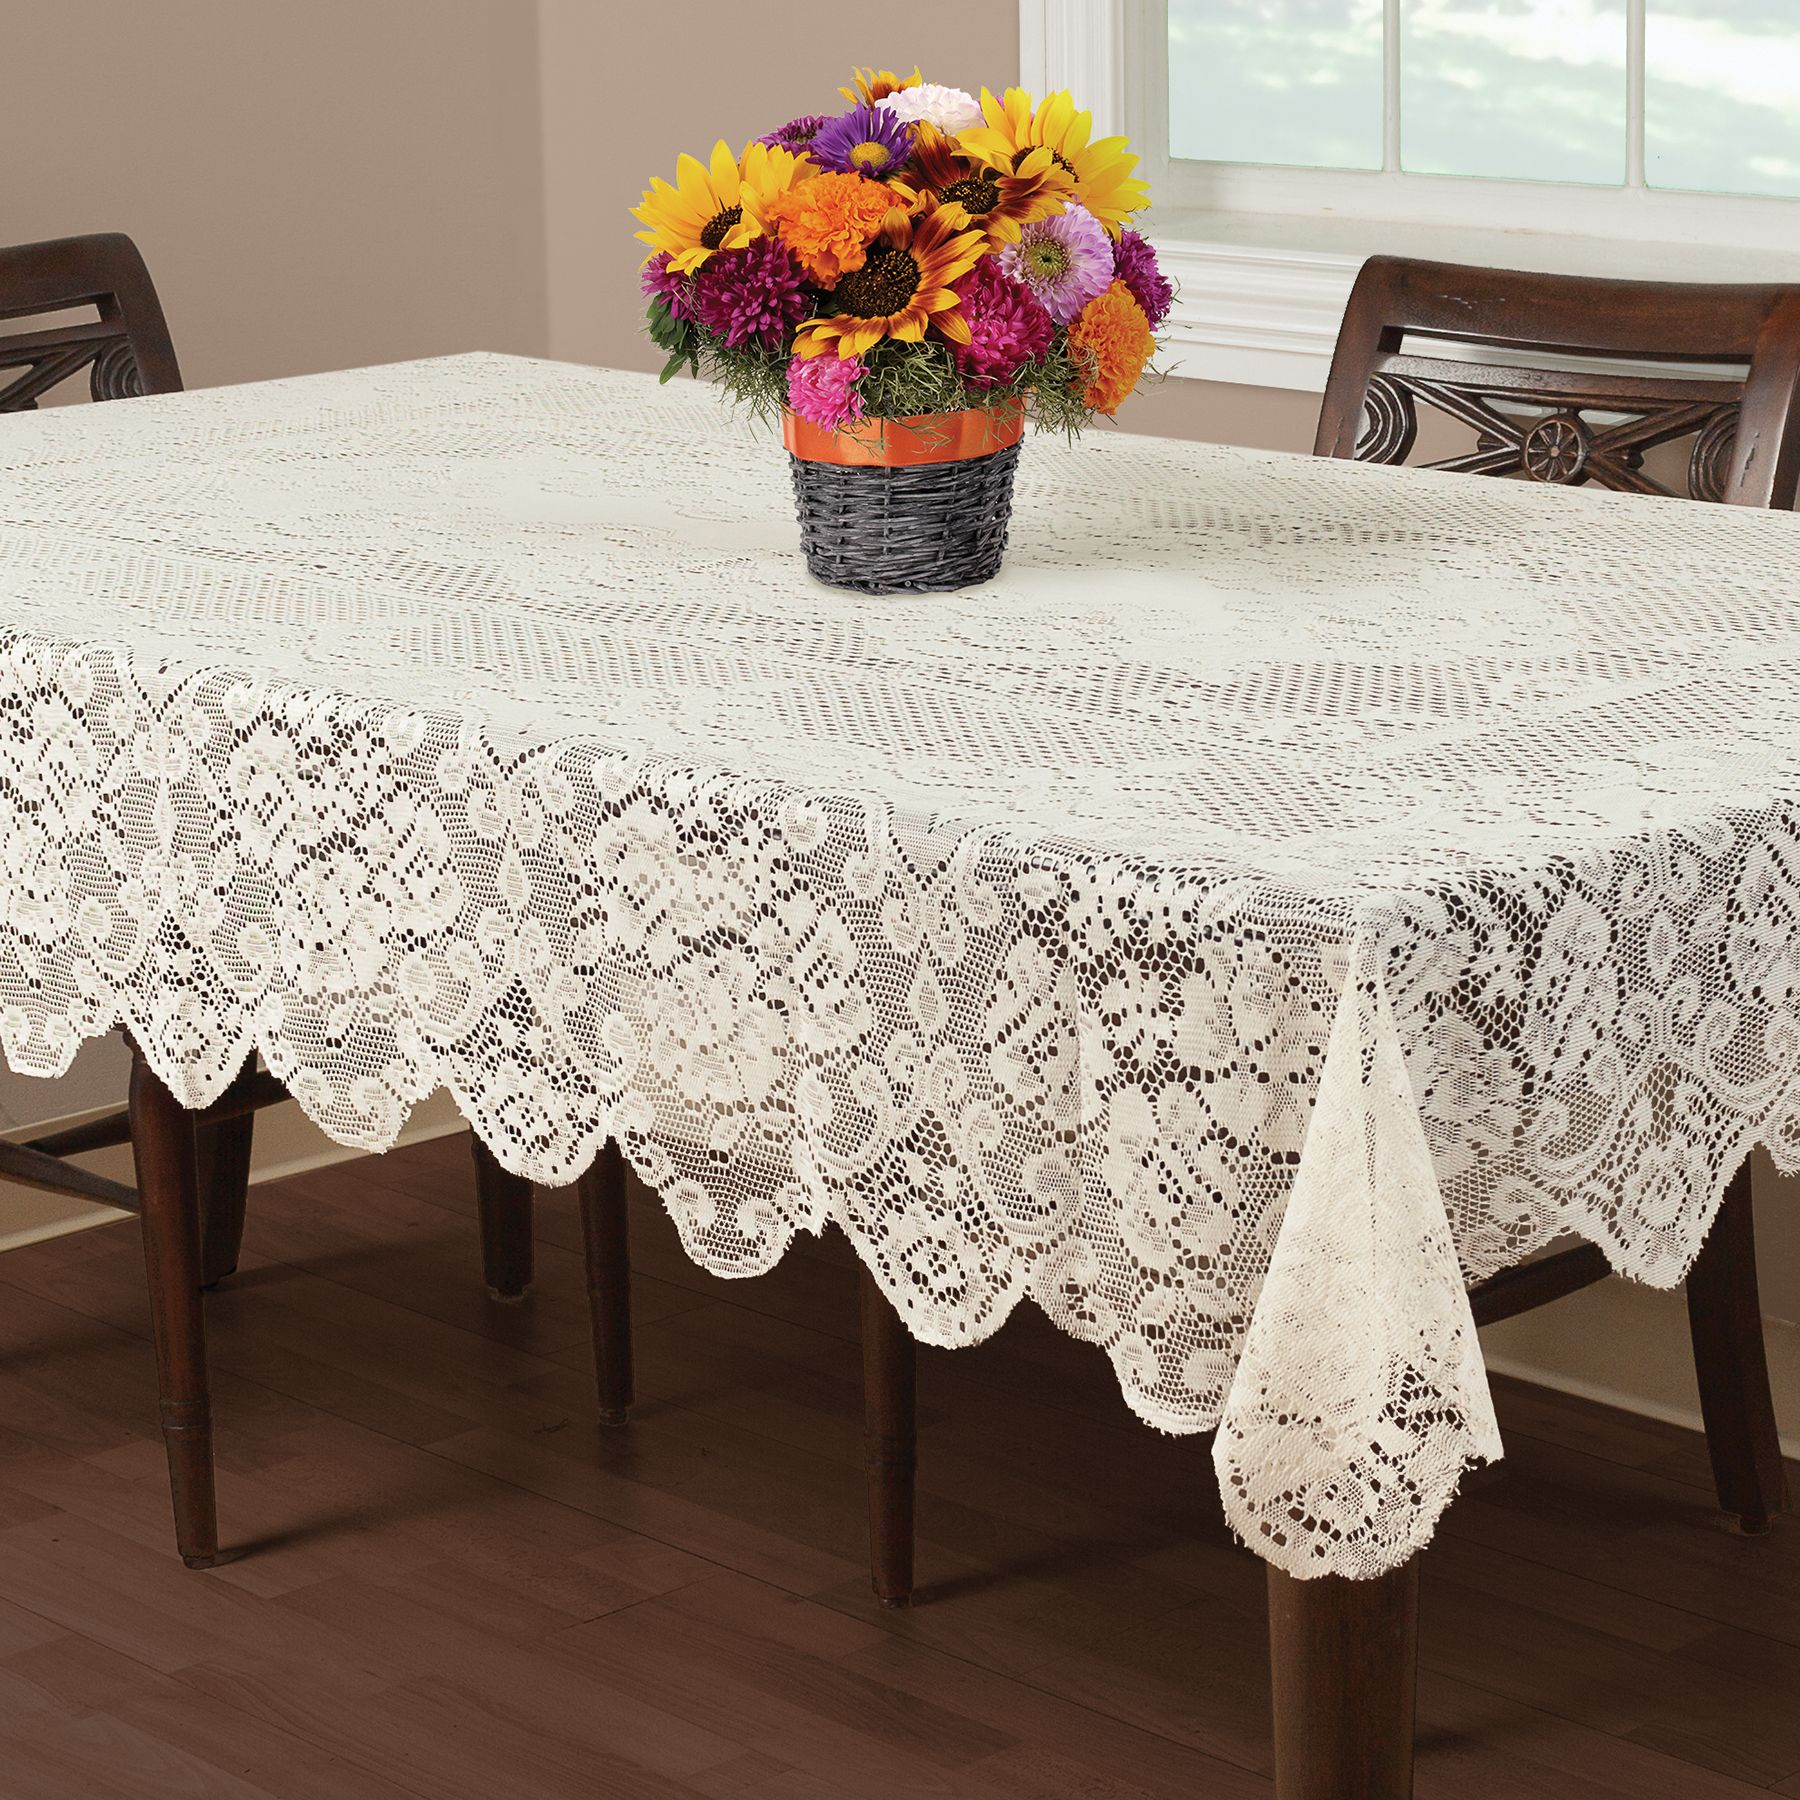 70 Round Lace Tablecloth Designs